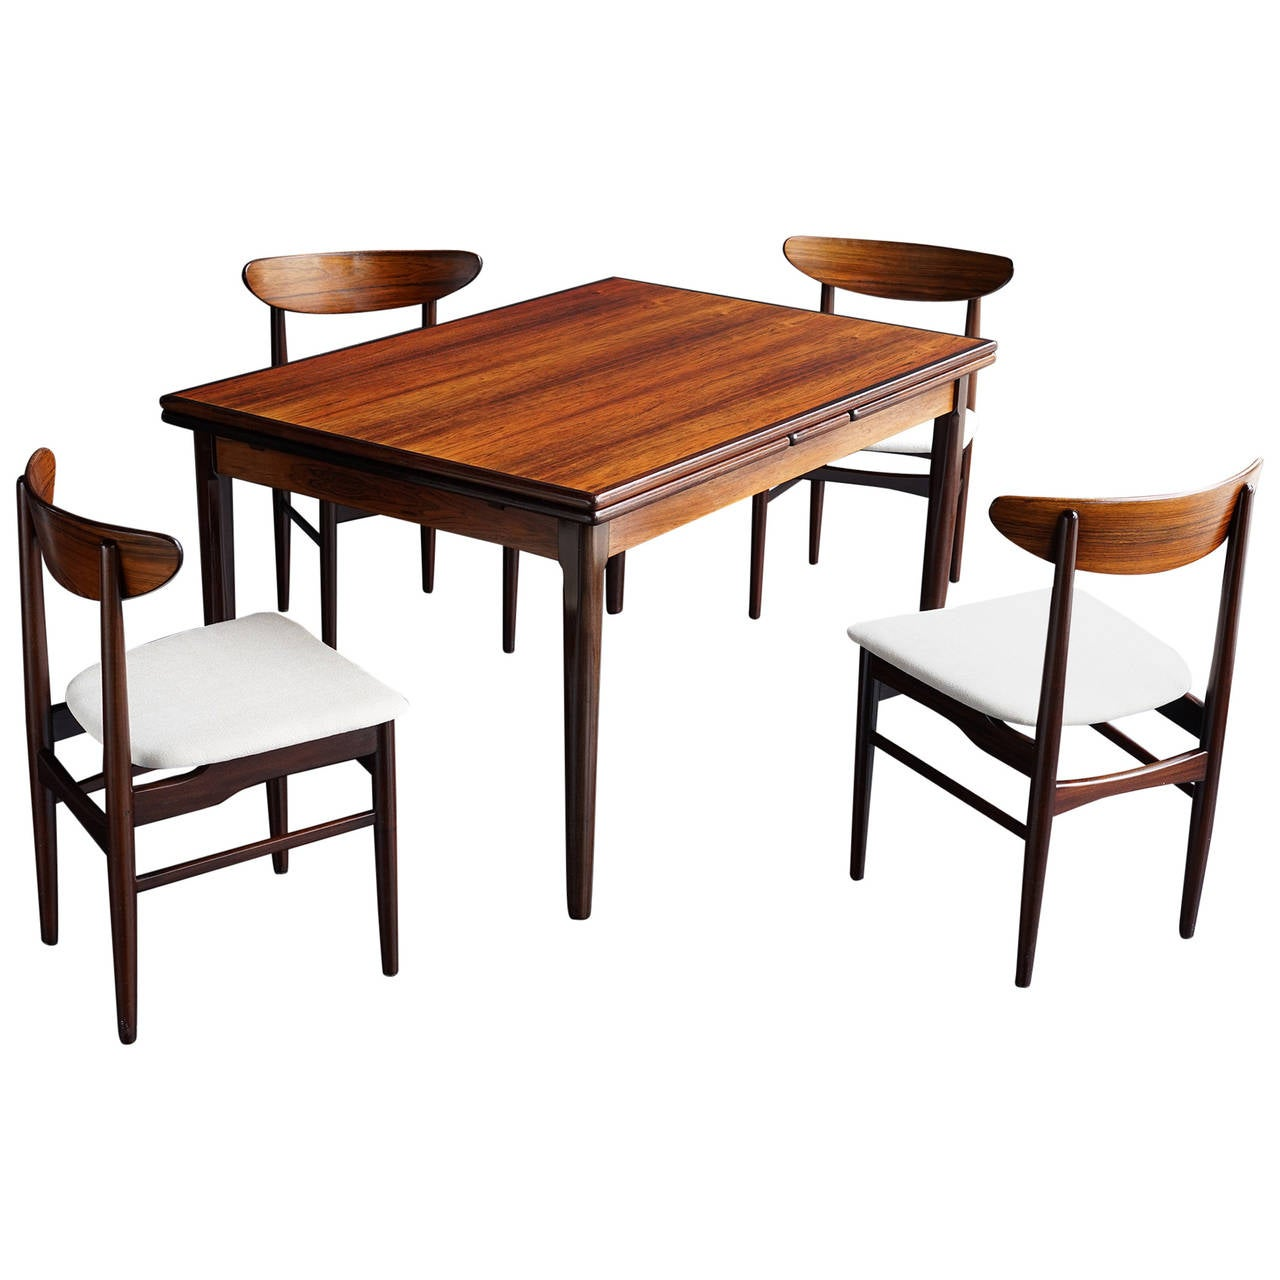 Danish modern rosewood dining set at 1stdibs for Modern dining room table sets